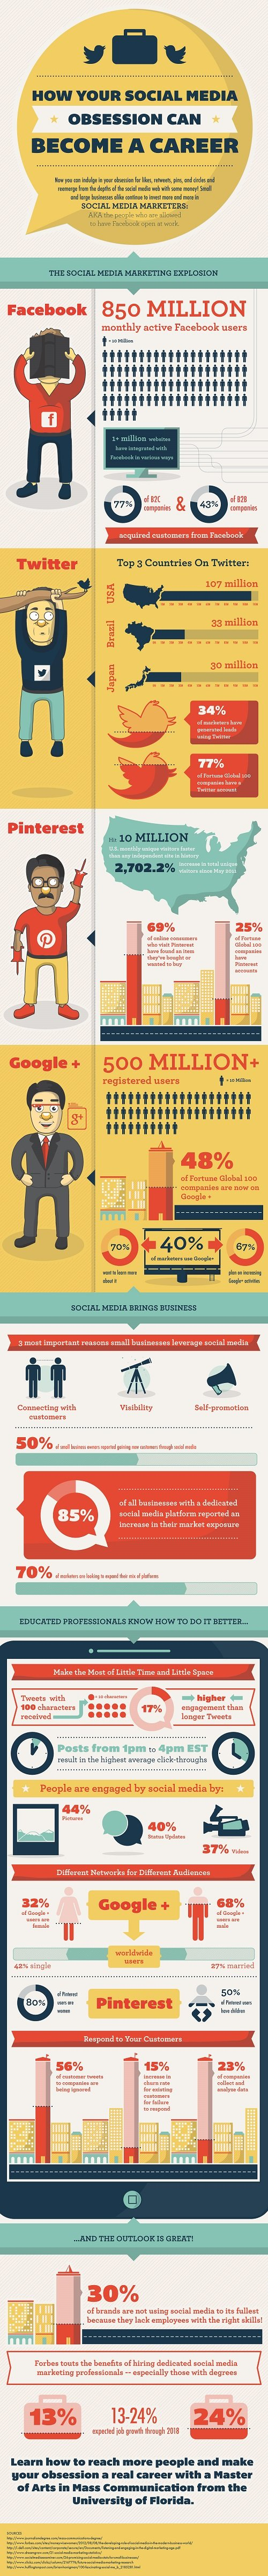 How your social media obsession can become a career - #Infographic